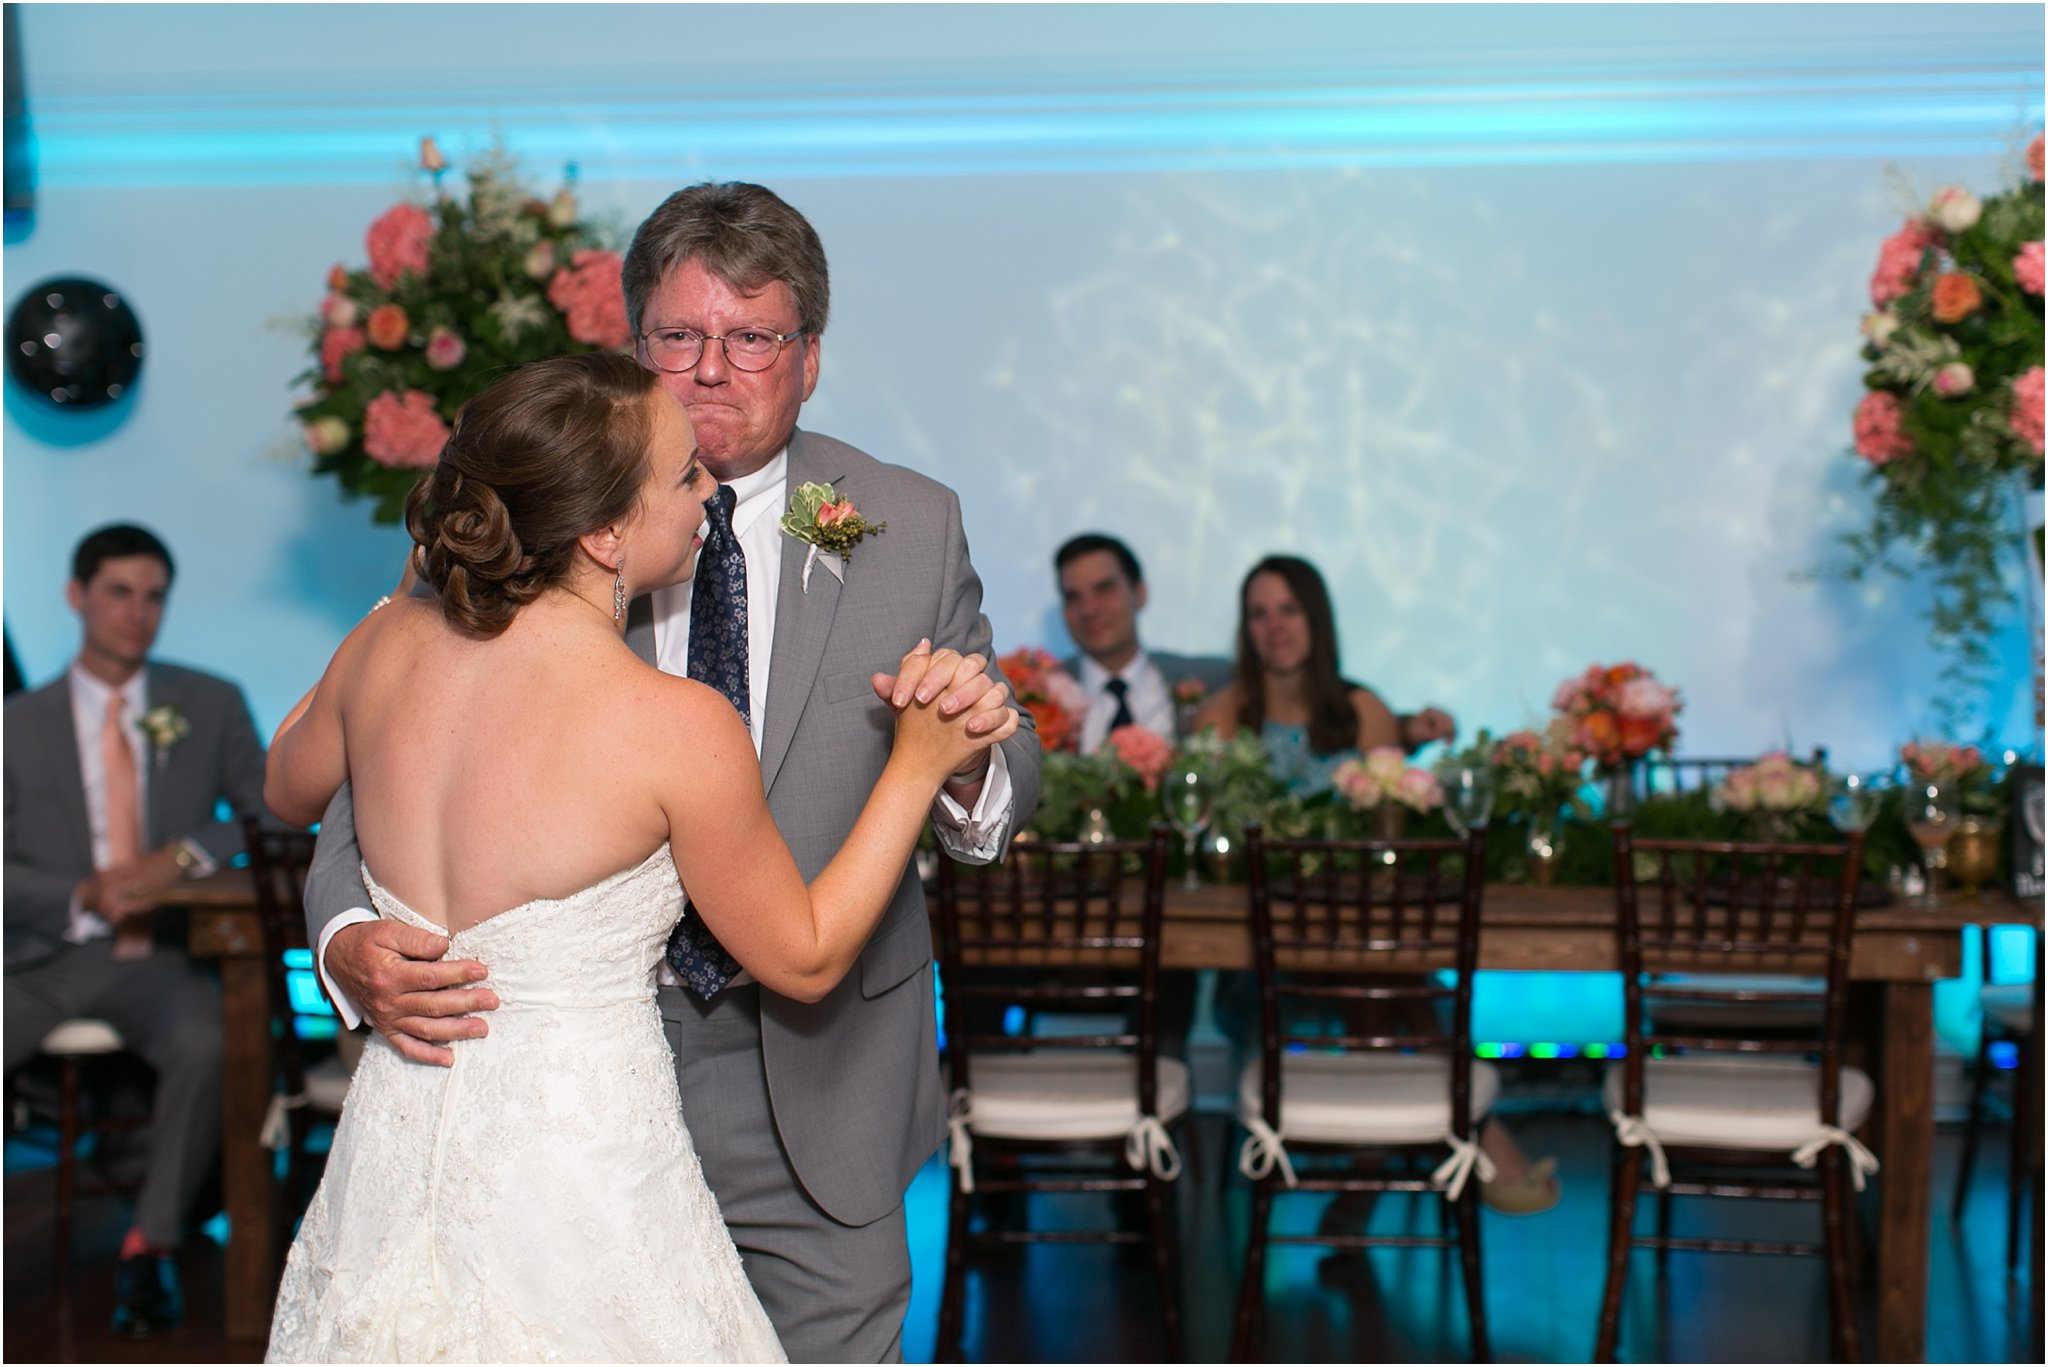 jessica_ryan_photography_wedding_photography_virginiabeach_virginia_candid_authentic_wedding_portraits_marina_shores_yacht_club_chesapeake_bay_1949